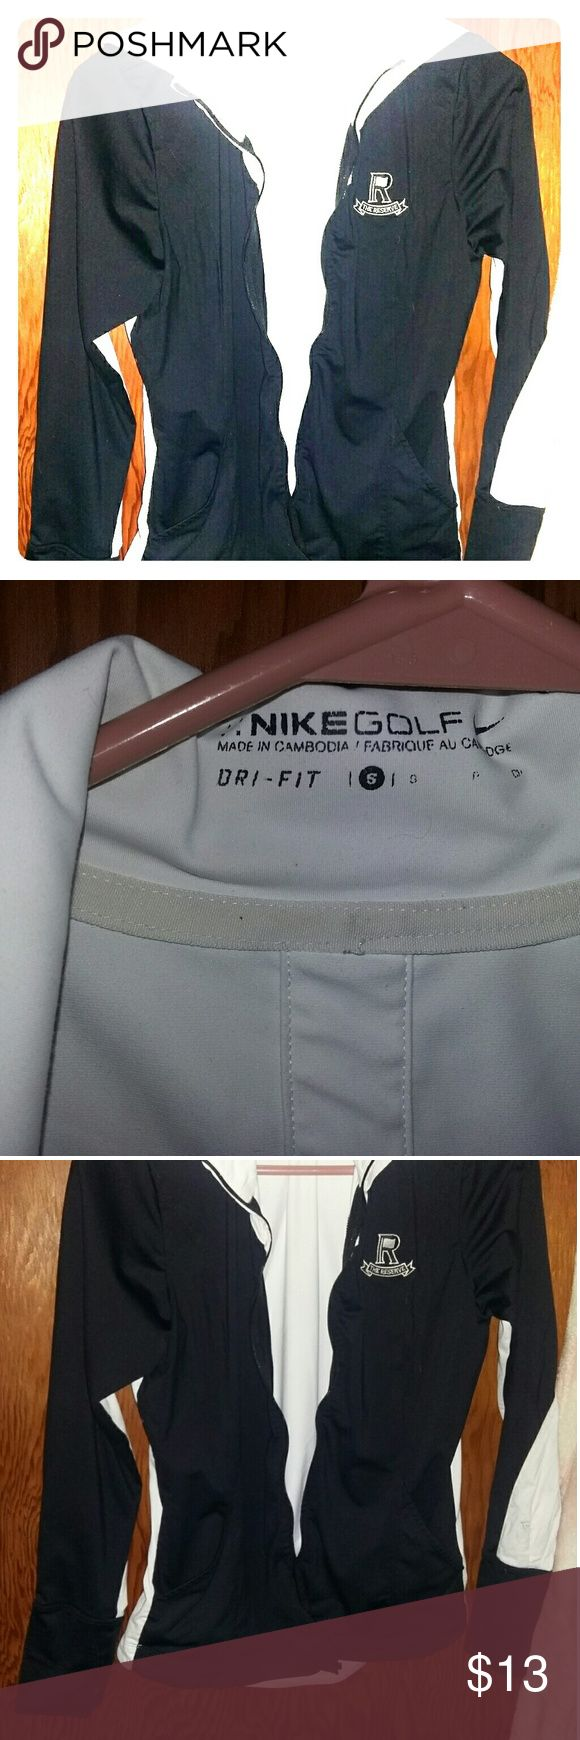 "Nike ""dri-fit"" Golf jacket Sleek black/white design. Zip needs fixed, but great condition other than that. Adorable, stylish, and made of material for comfort while exercising. Nike Golf Jackets & Coats"